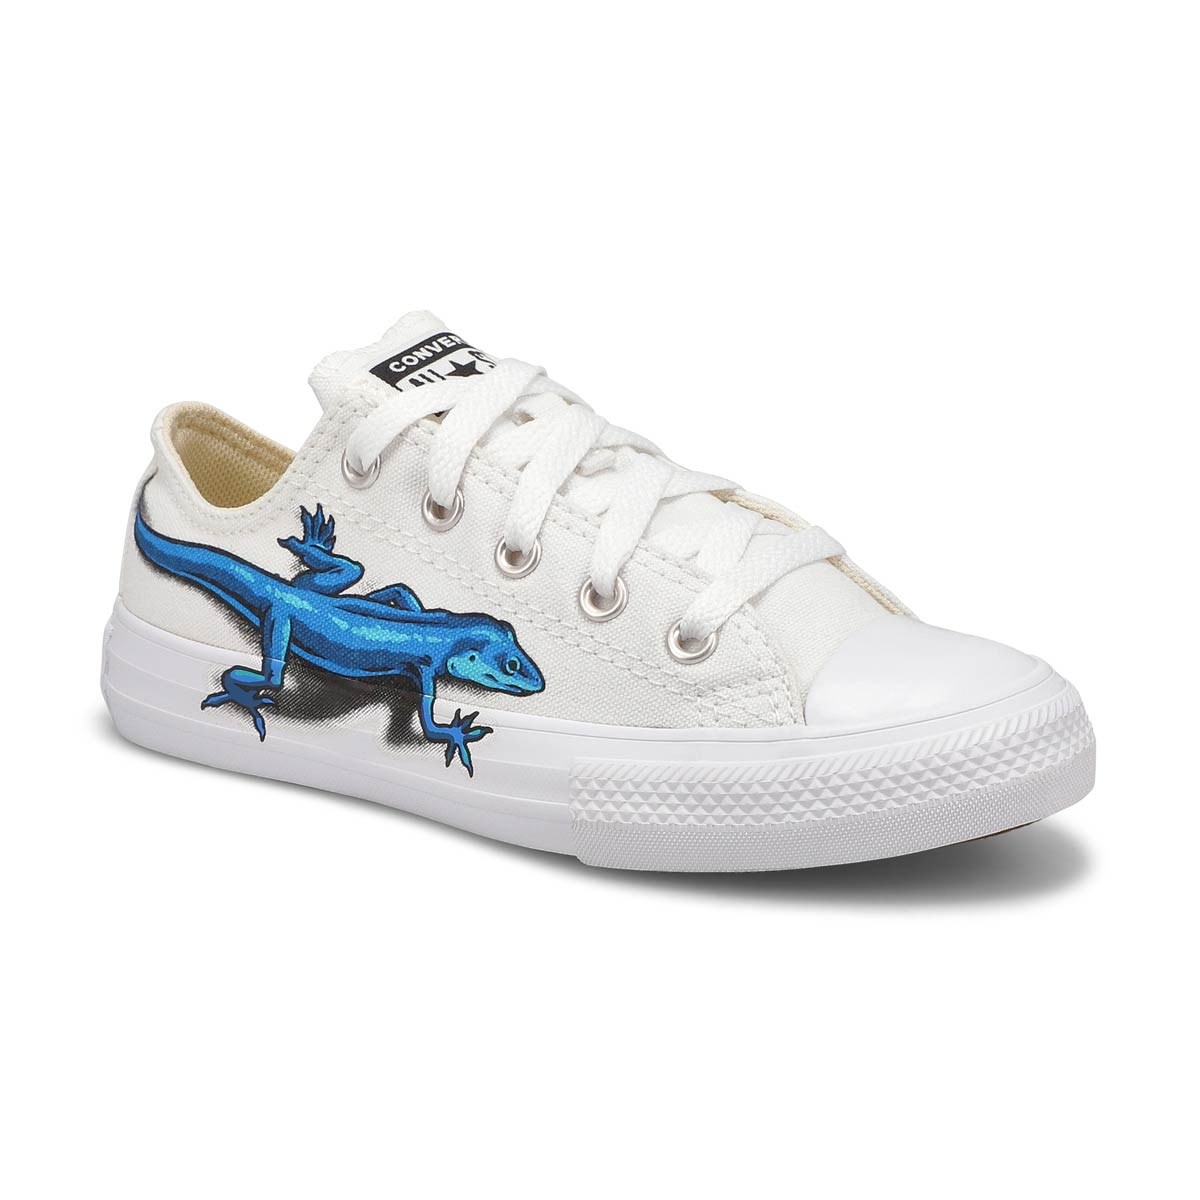 Boys' CT All Star Ox sneakers - wht/red/blk